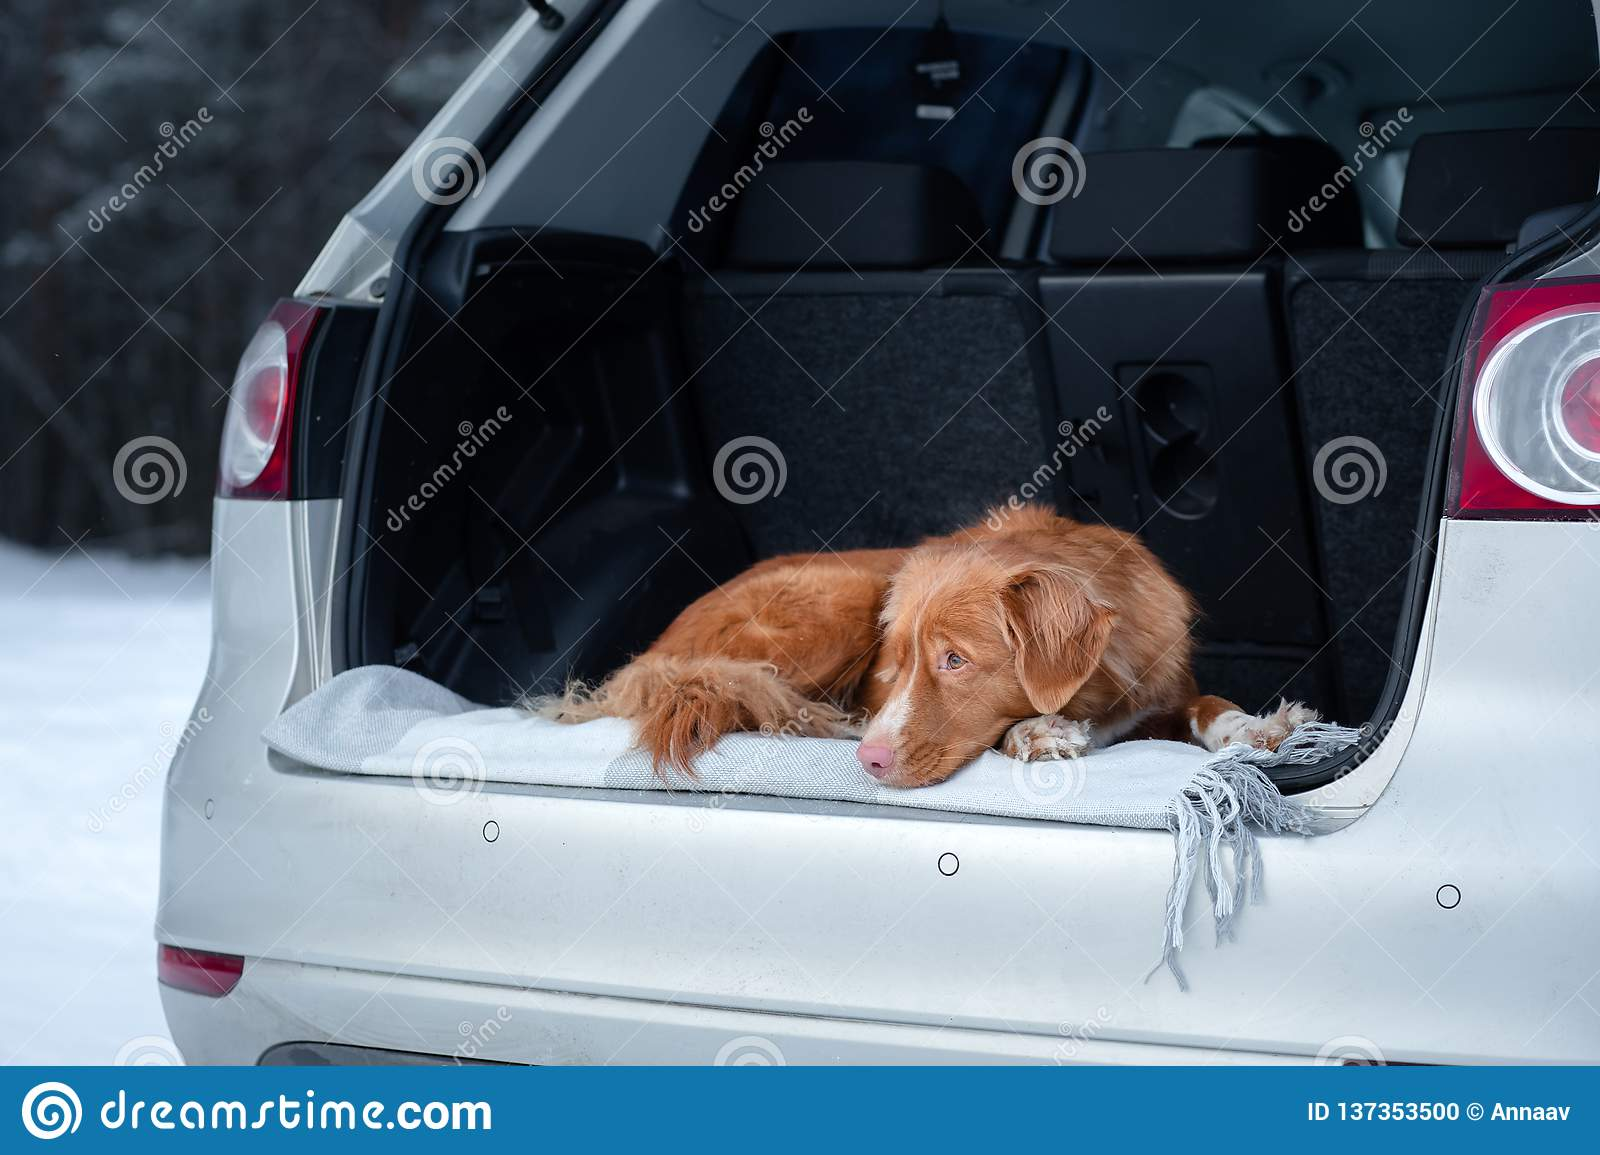 Dog Is In The Car  Travel With A Pet  Healthy Lifestyle